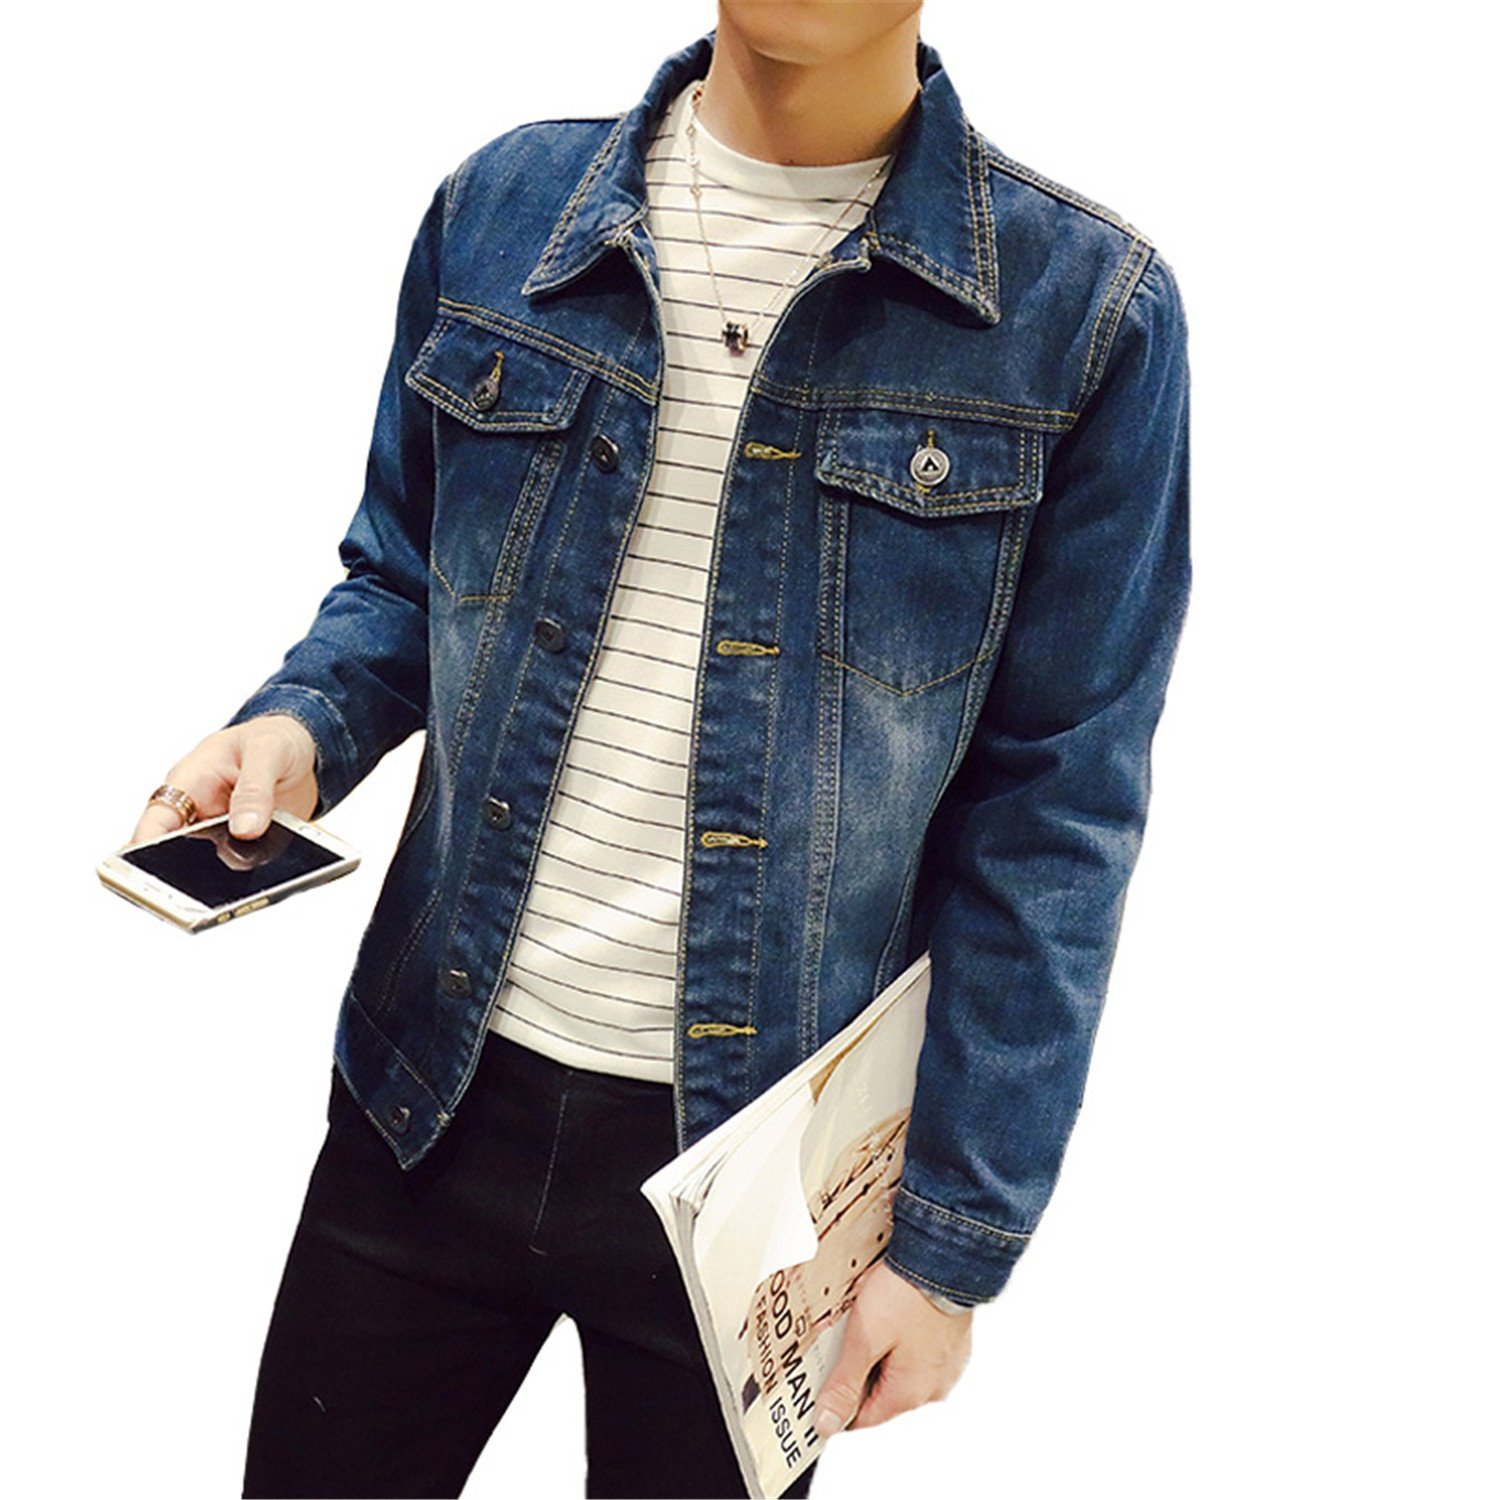 Beancan Solid Casual Slim Mens Denim Jacket Plus Size S-4XL 5XL Jacket Men Cowboy Mens Jean Jacket Chaqueta Hombre at Amazon Mens Clothing store: